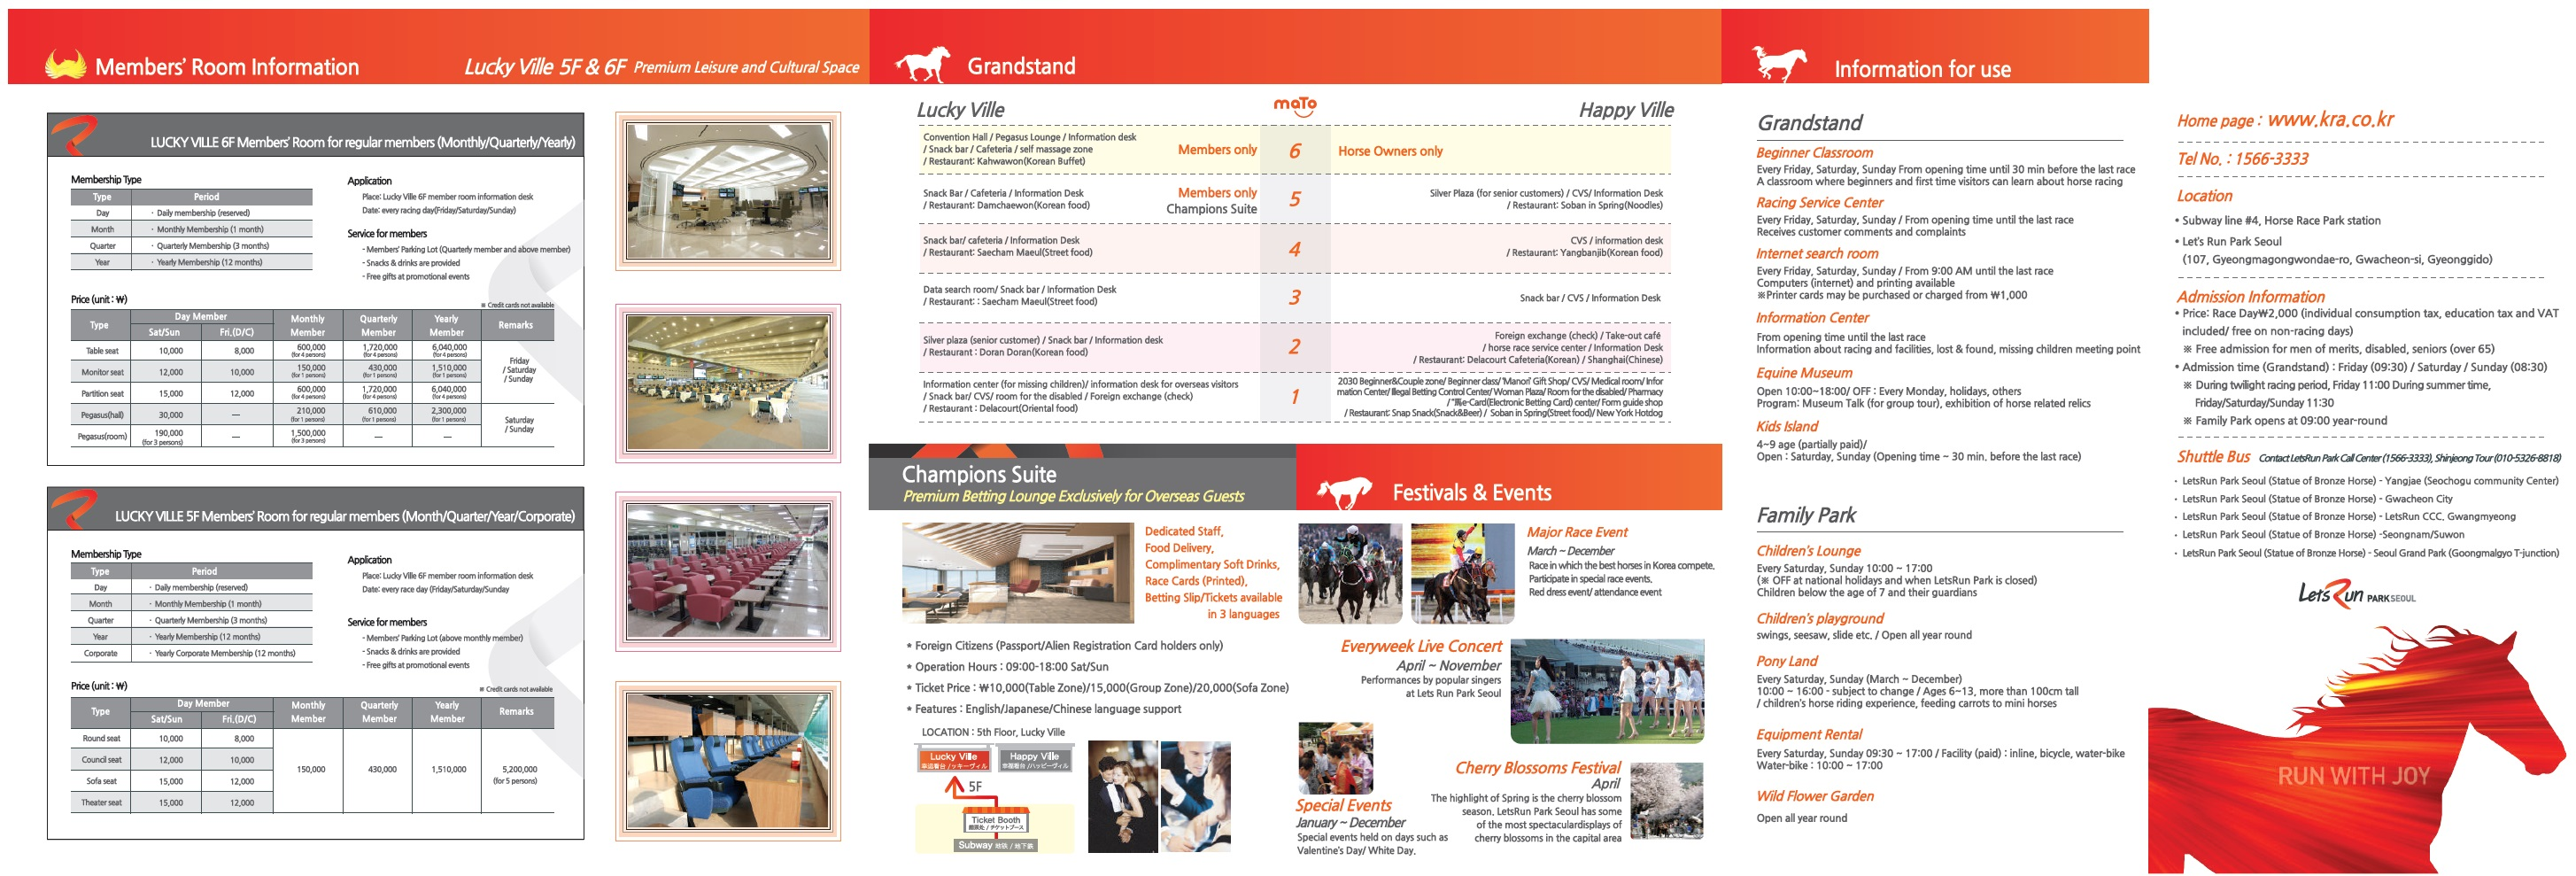 Let's Run Park Seoul Brochure English 2